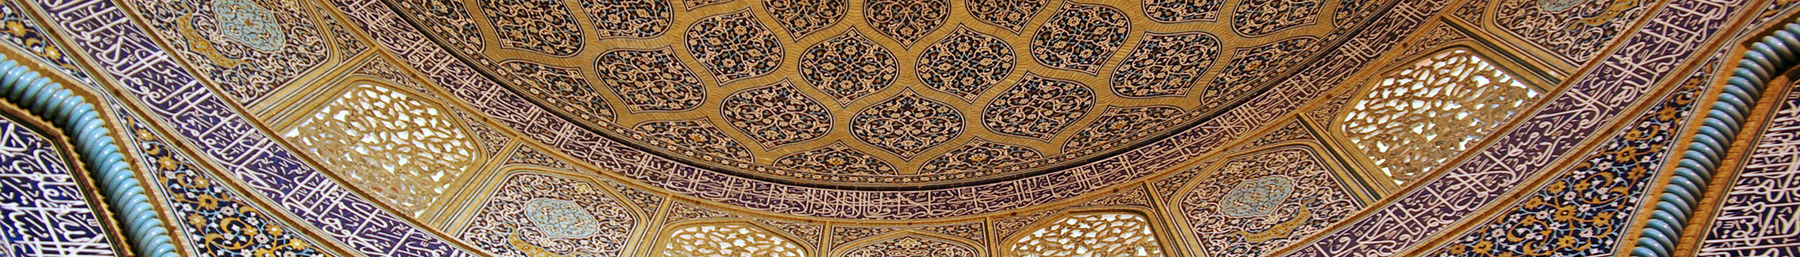 Interior wall and ceiling of the Sheikh-Lotf-Allah mosque in Isfahan